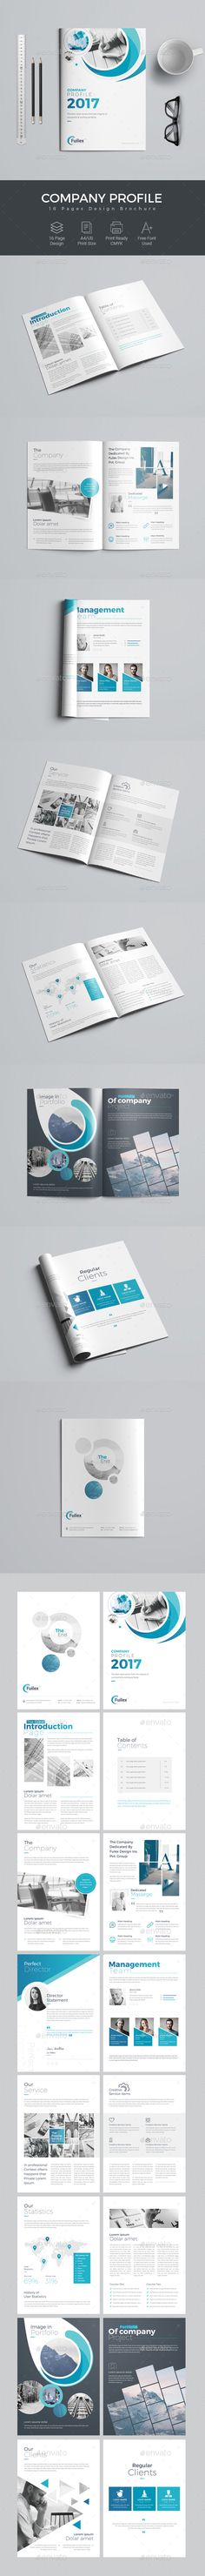 The Company Profile - #Corporate #Brochures Download here: https://graphicriver.net/item/the-company-profile/19719733?ref=alena994